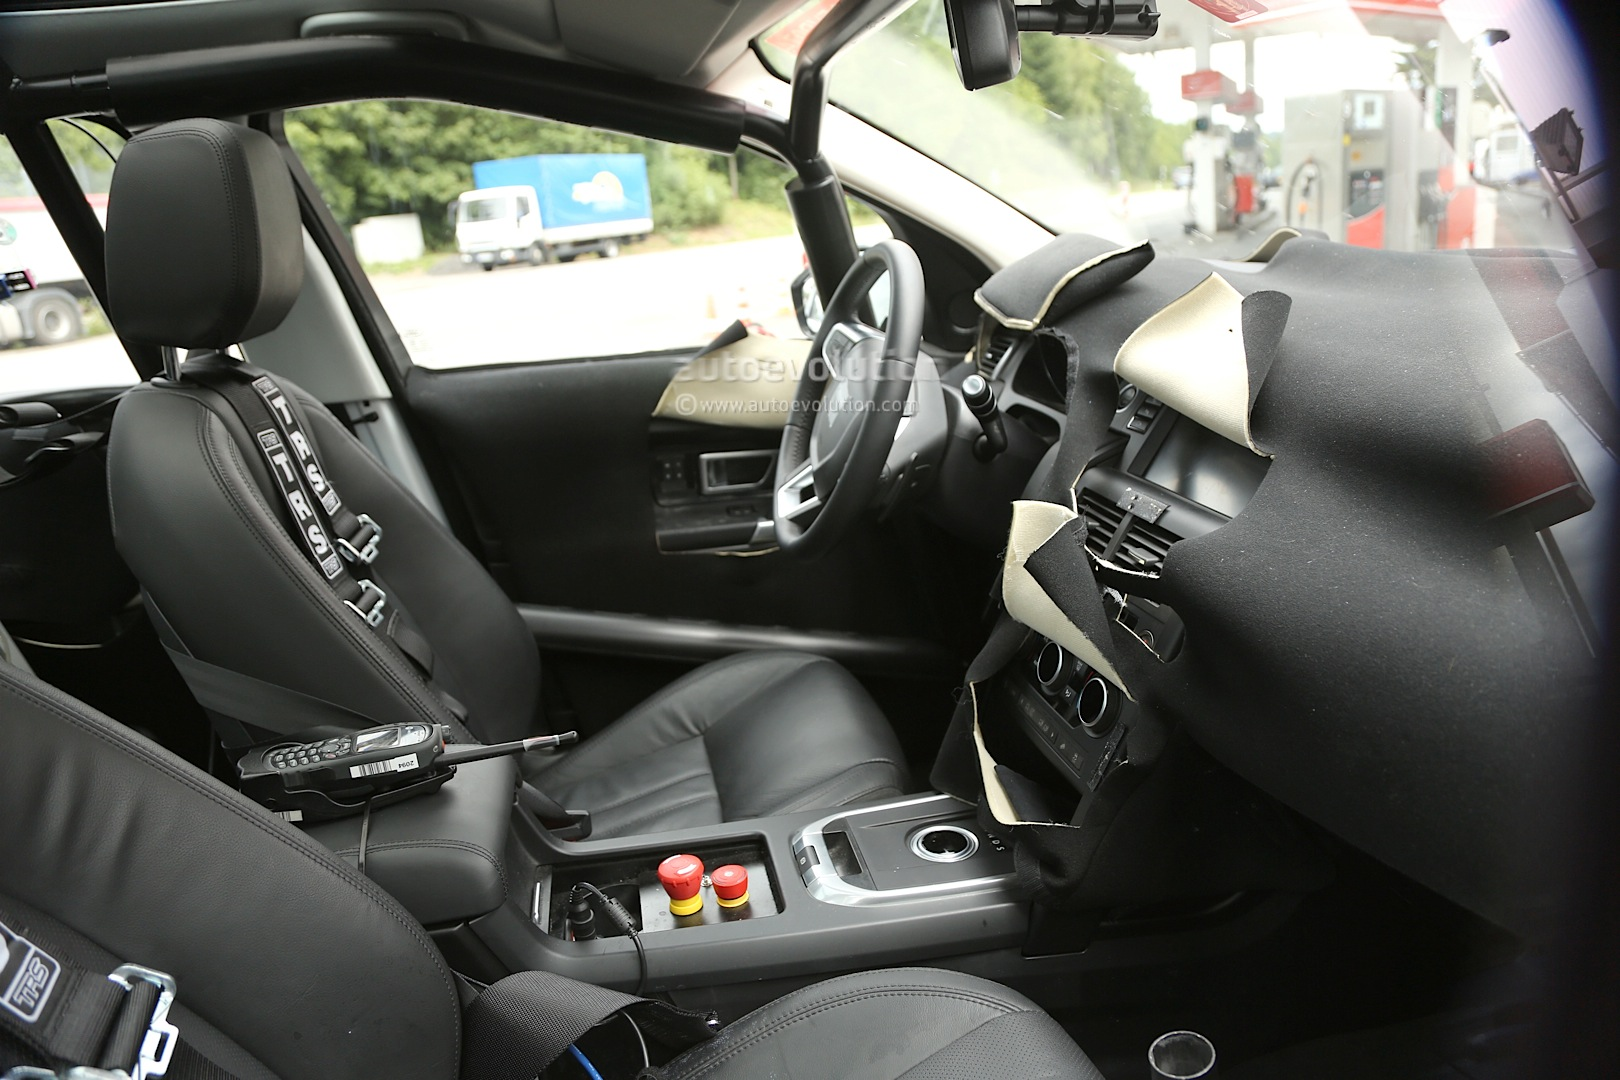 fantastic-design-of-the-black-seats-ideas-with-black-dash-ad-black-steering-wheels-as-the-land-rover-discovery-sport-2015-interior-ideas